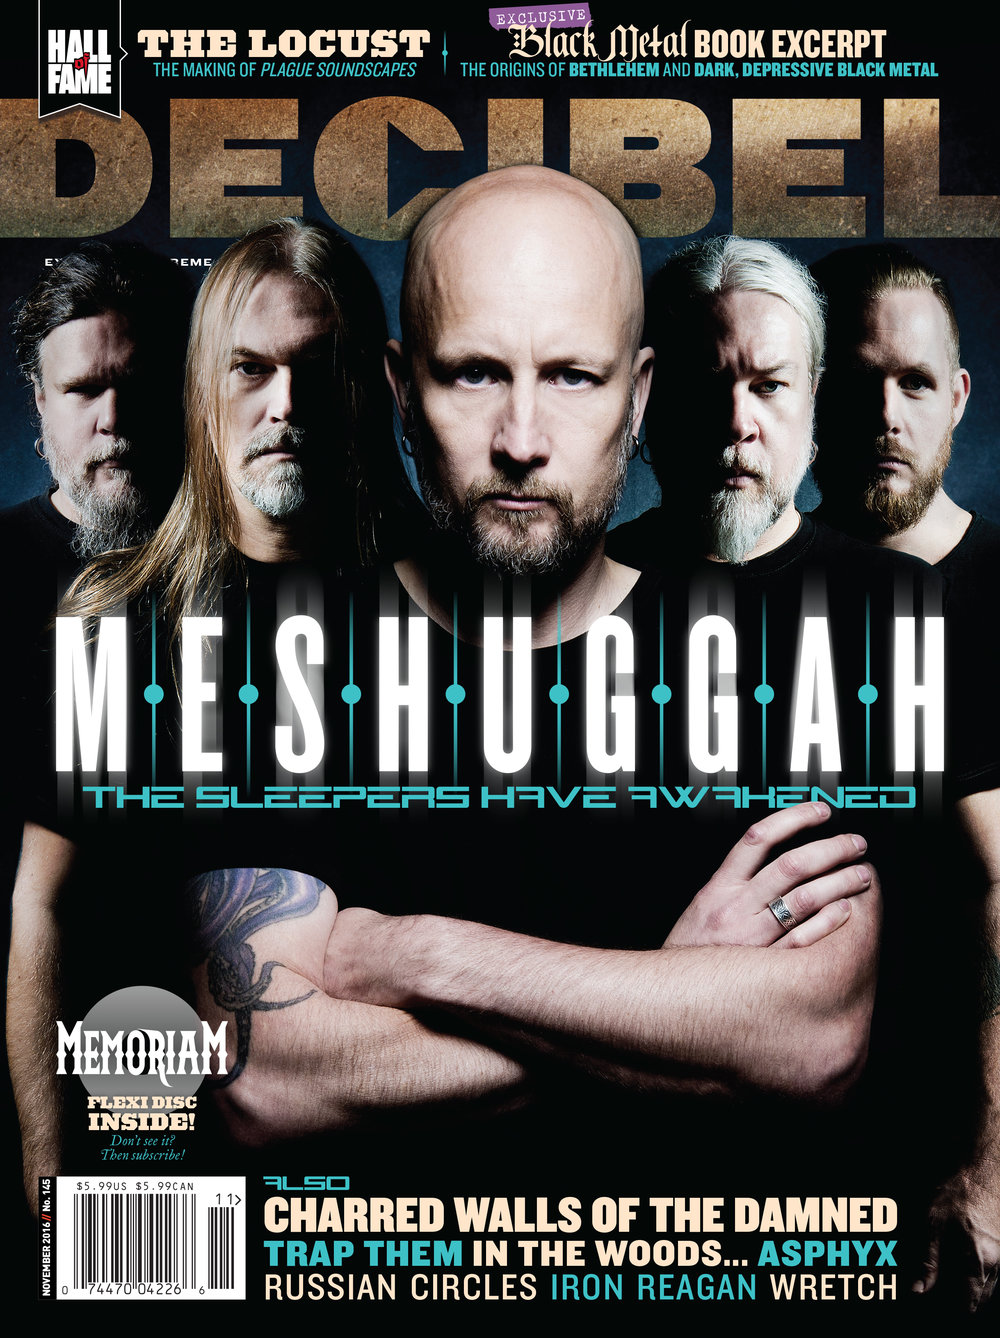 Decibel #142 - November 2016 - Meshuggah